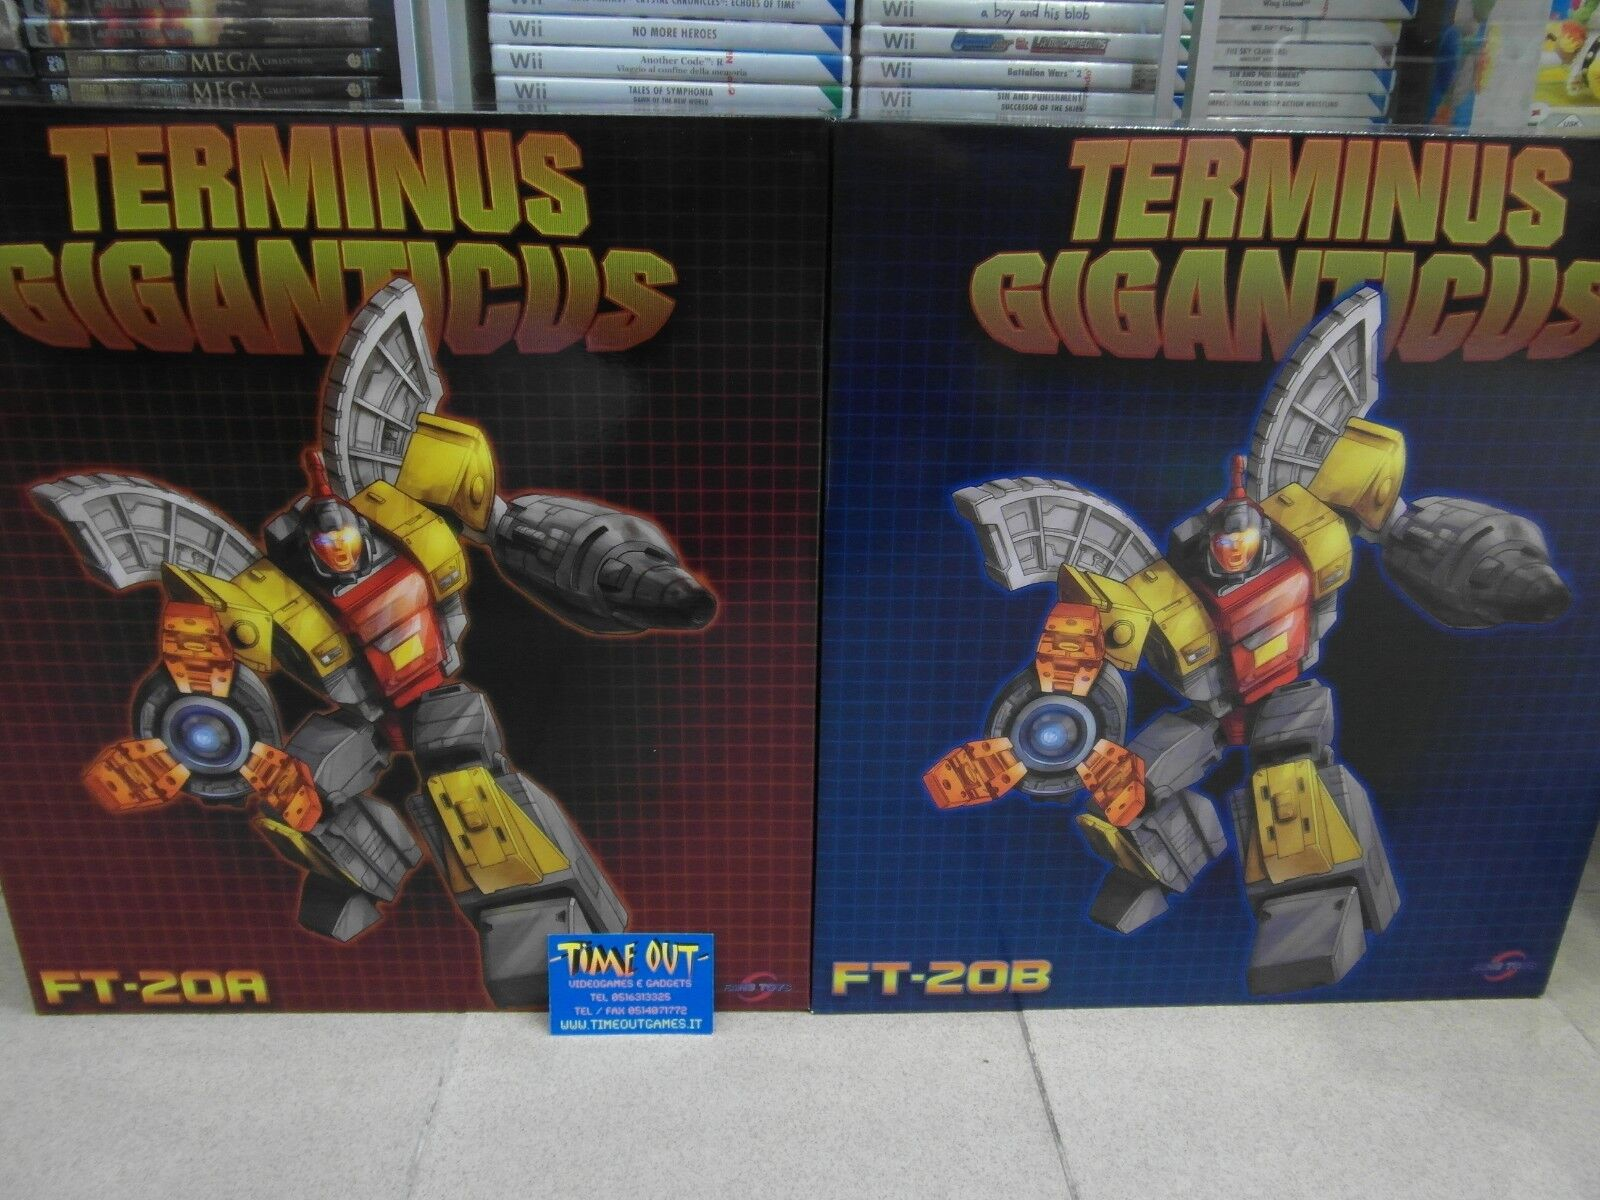 FANS TOYS TRANSFORMERS FT-20A & FT-20B AEGIS SENTINEL TERMINUS GIGANTICUS NUOVO